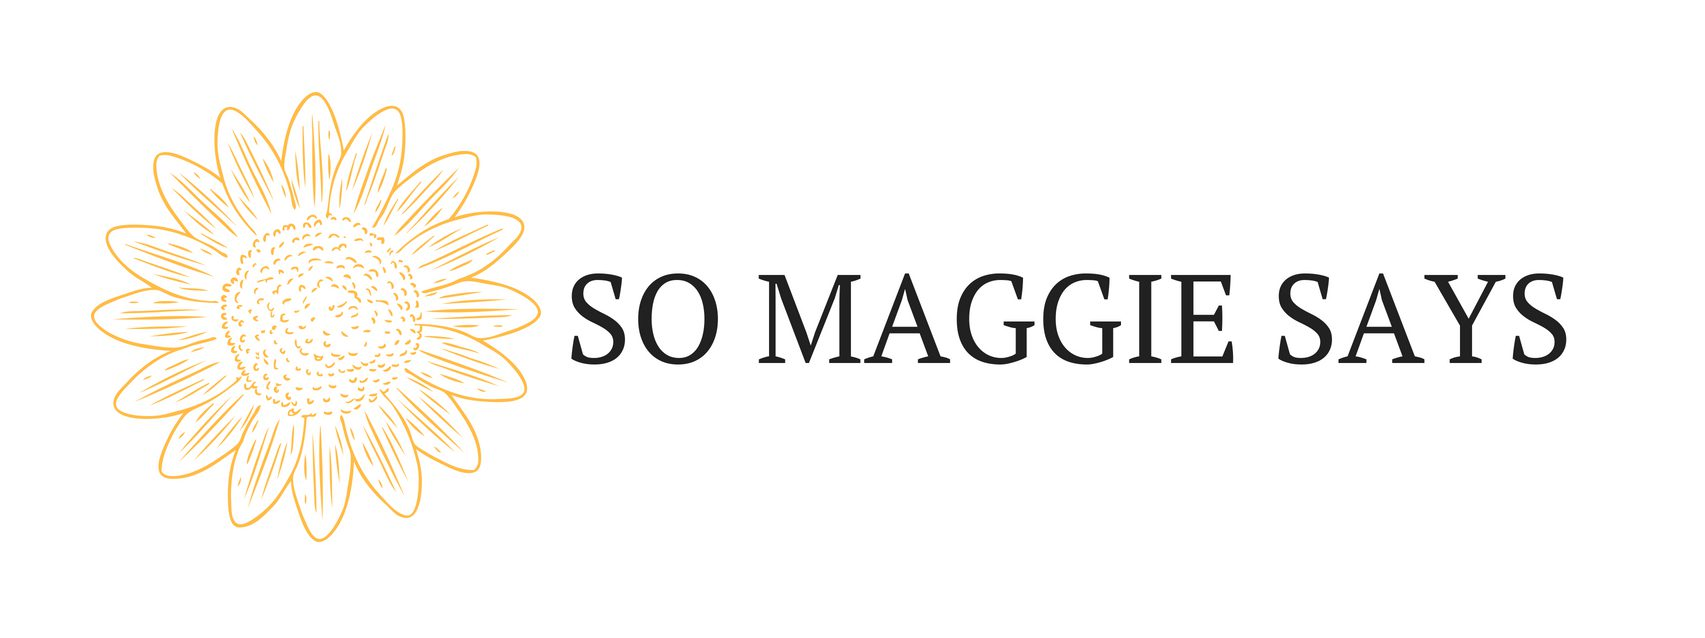 So Maggie Says